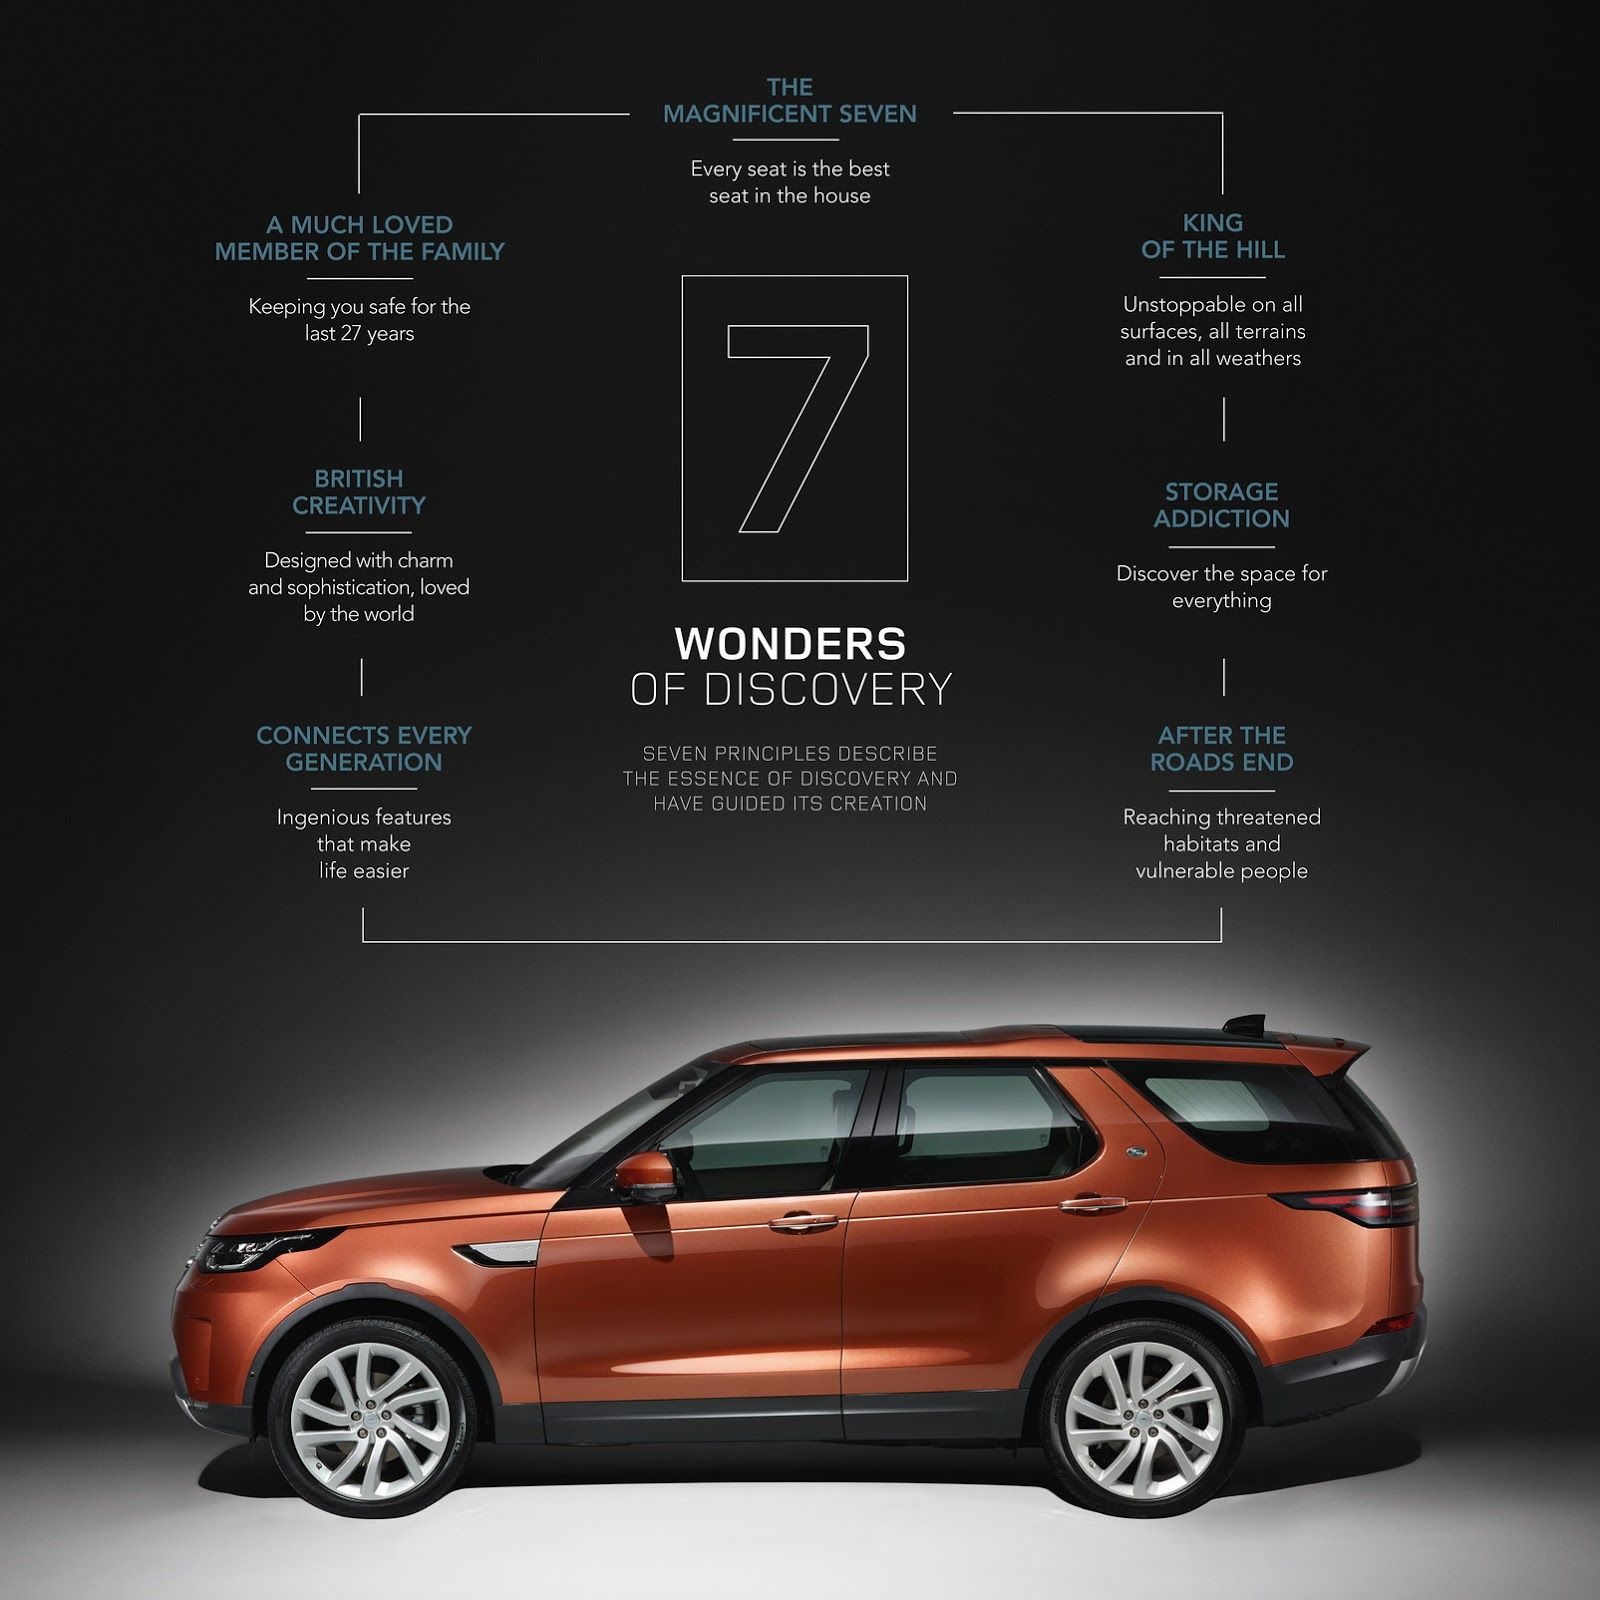 Land rover has presented the all new three row seven seat discovery that